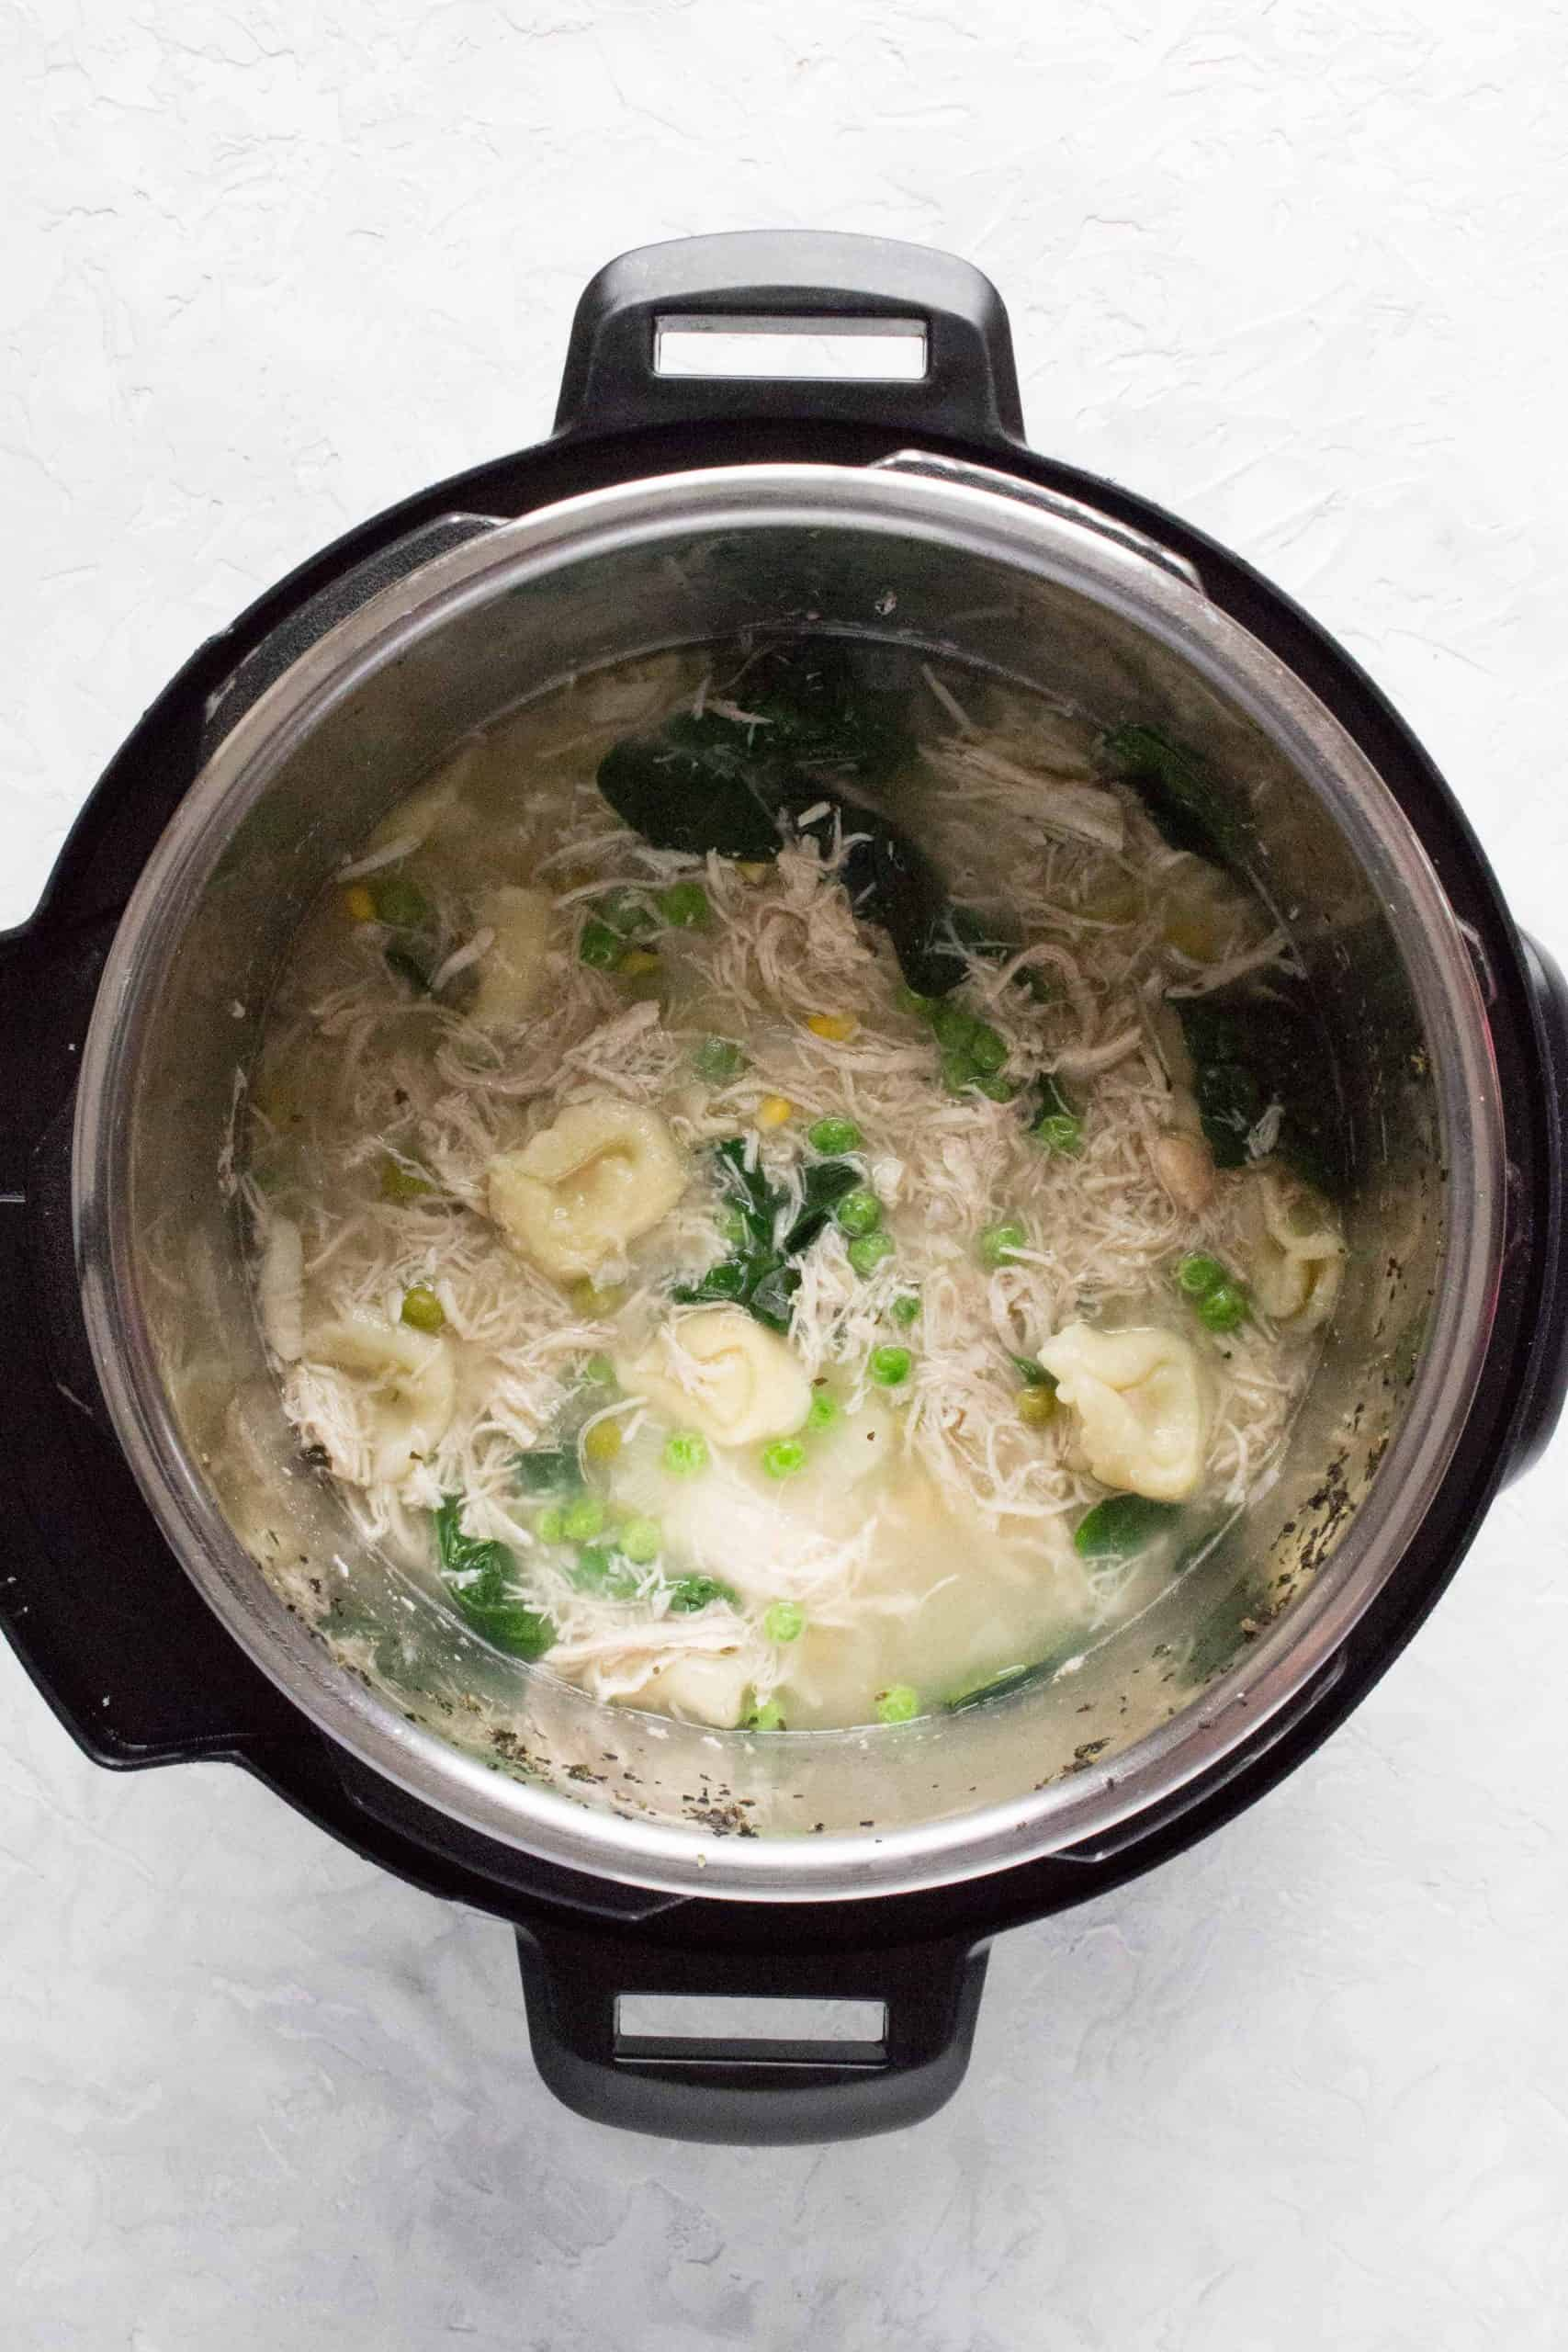 instant pot with cooked chicken and tortellini soup inside